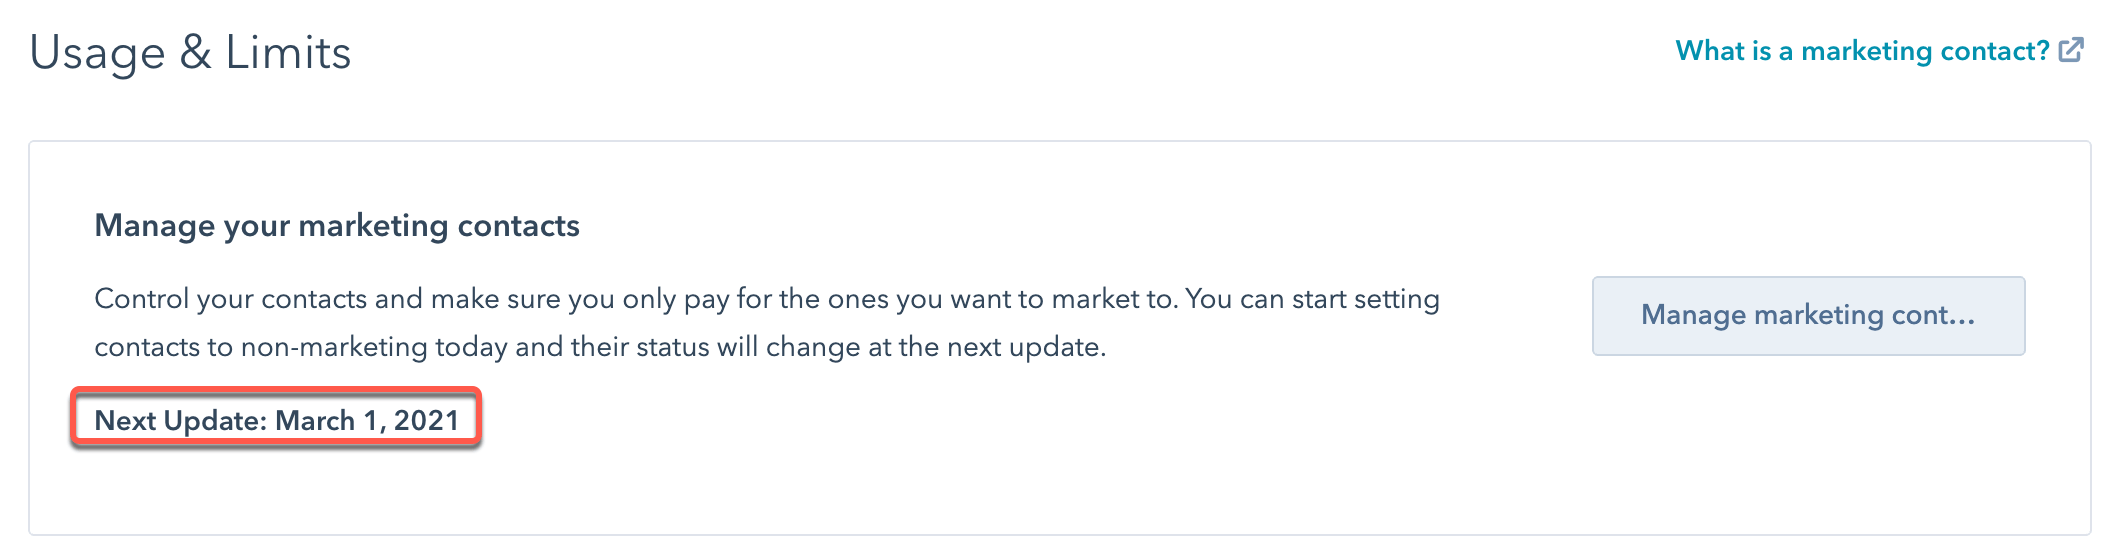 next-update-date-marketing-contacts